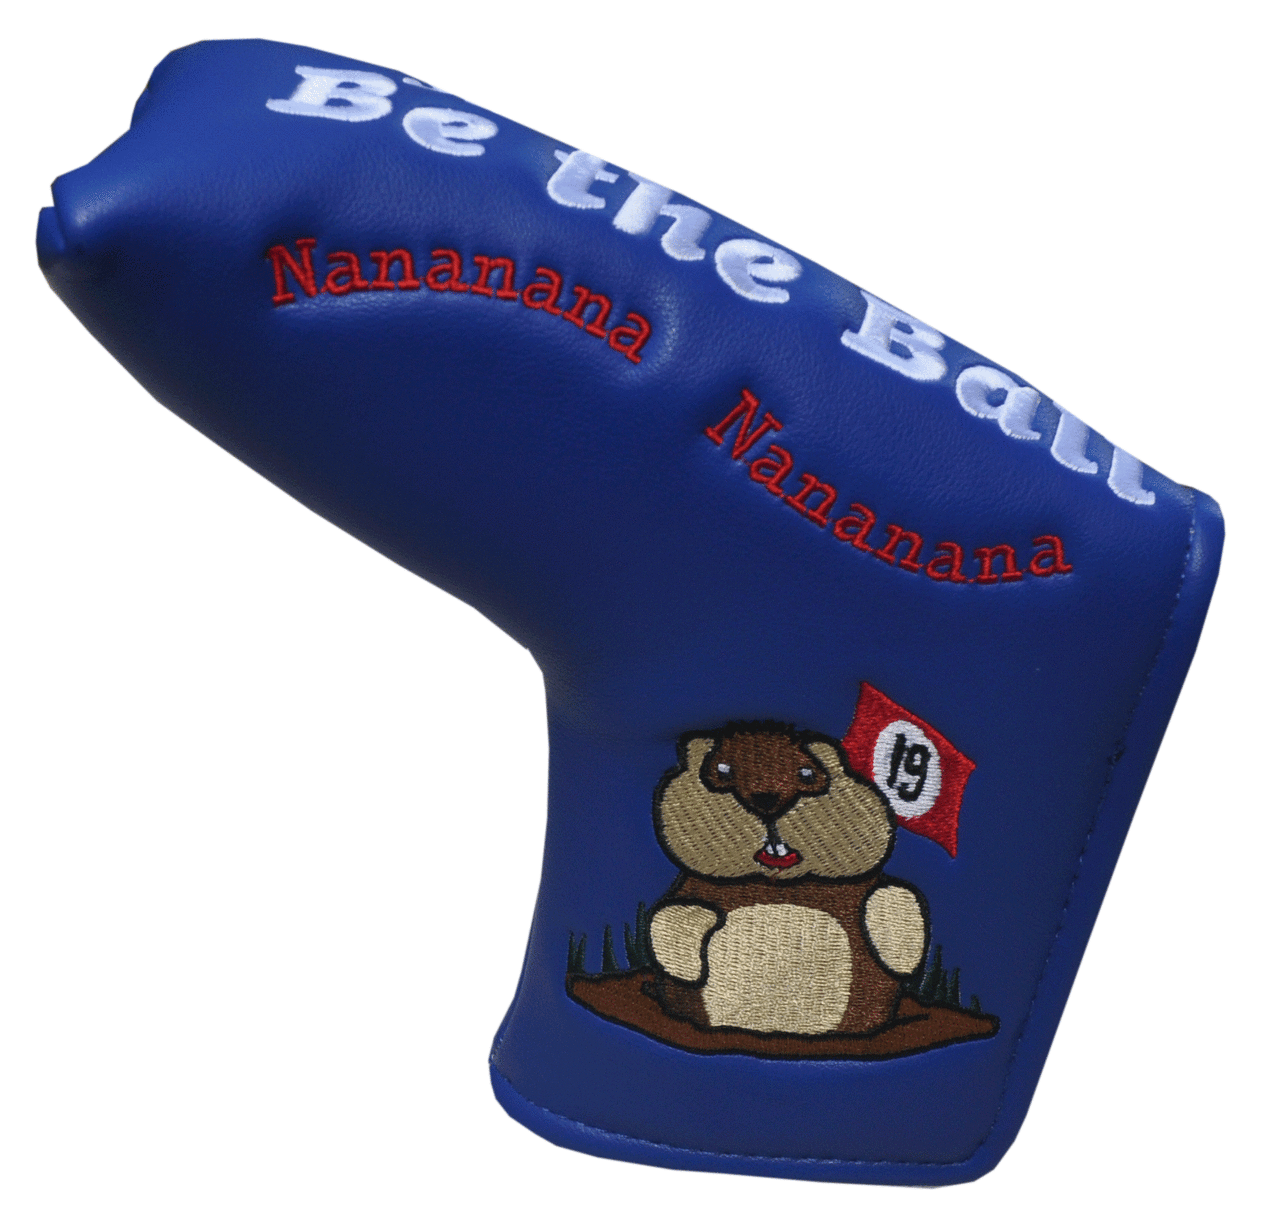 Caddyshack Embroidered Putter Cover - Just Be The Ball by ReadyGolf